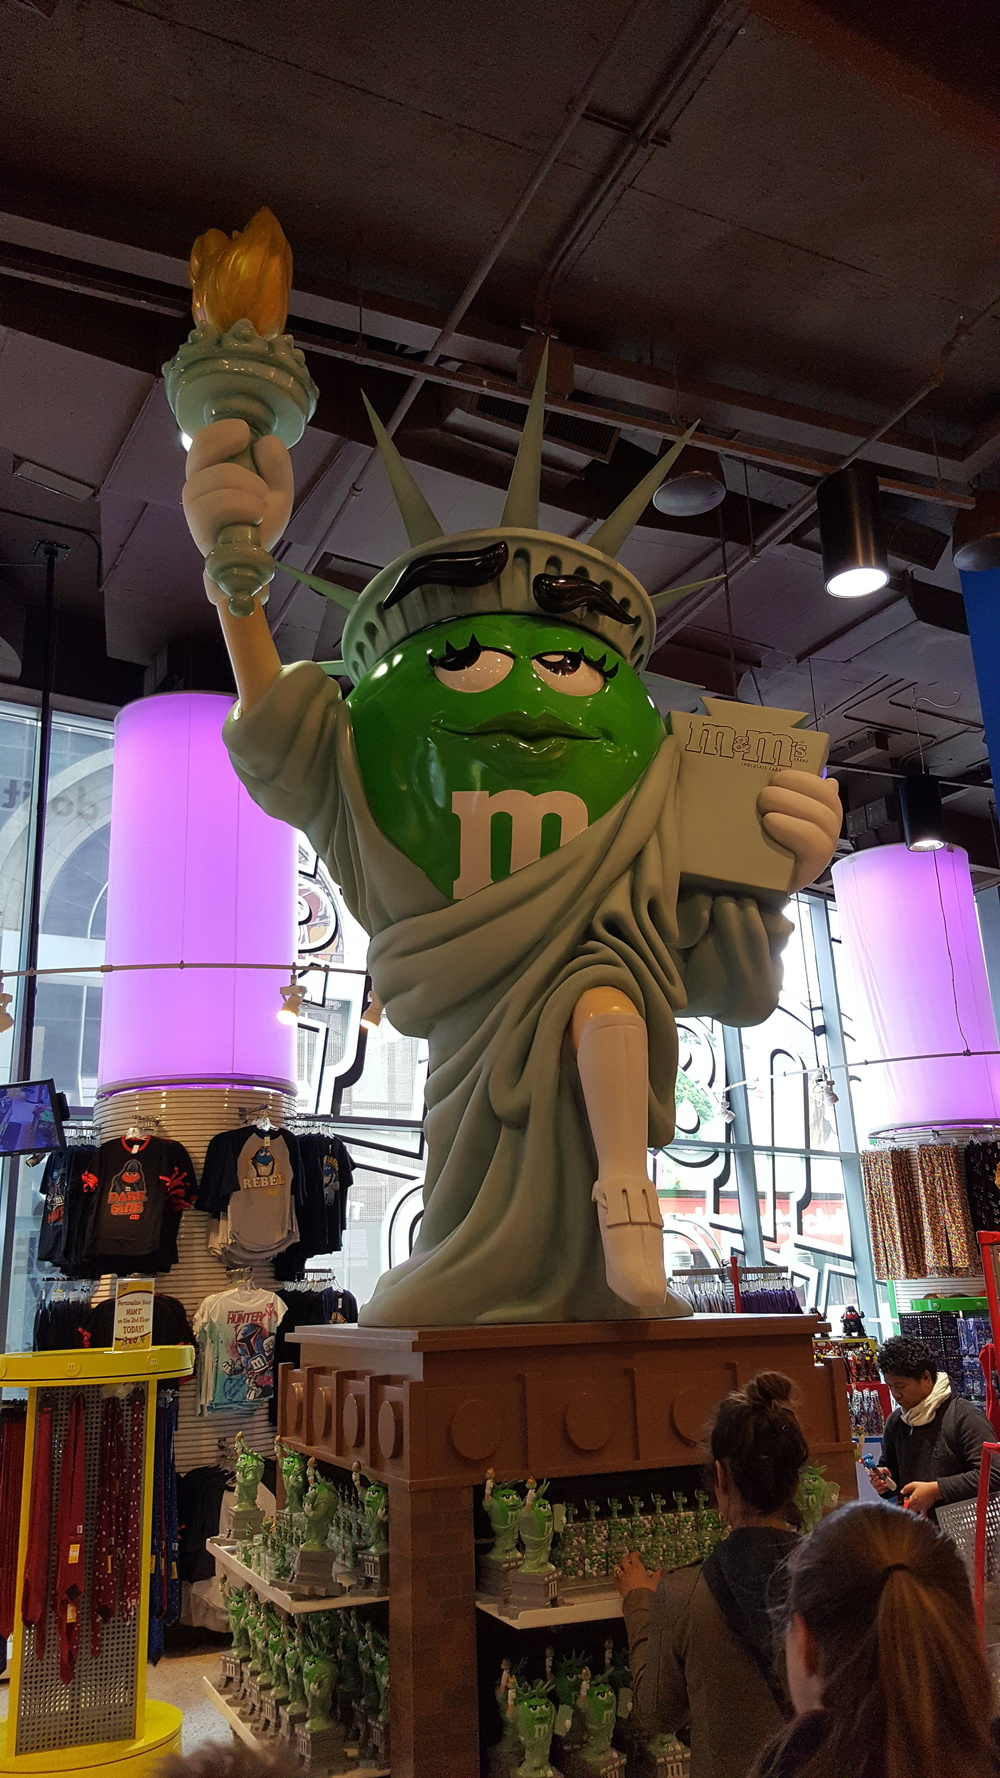 Experts agree that this patriotic M&M statue is not a cyber risk.